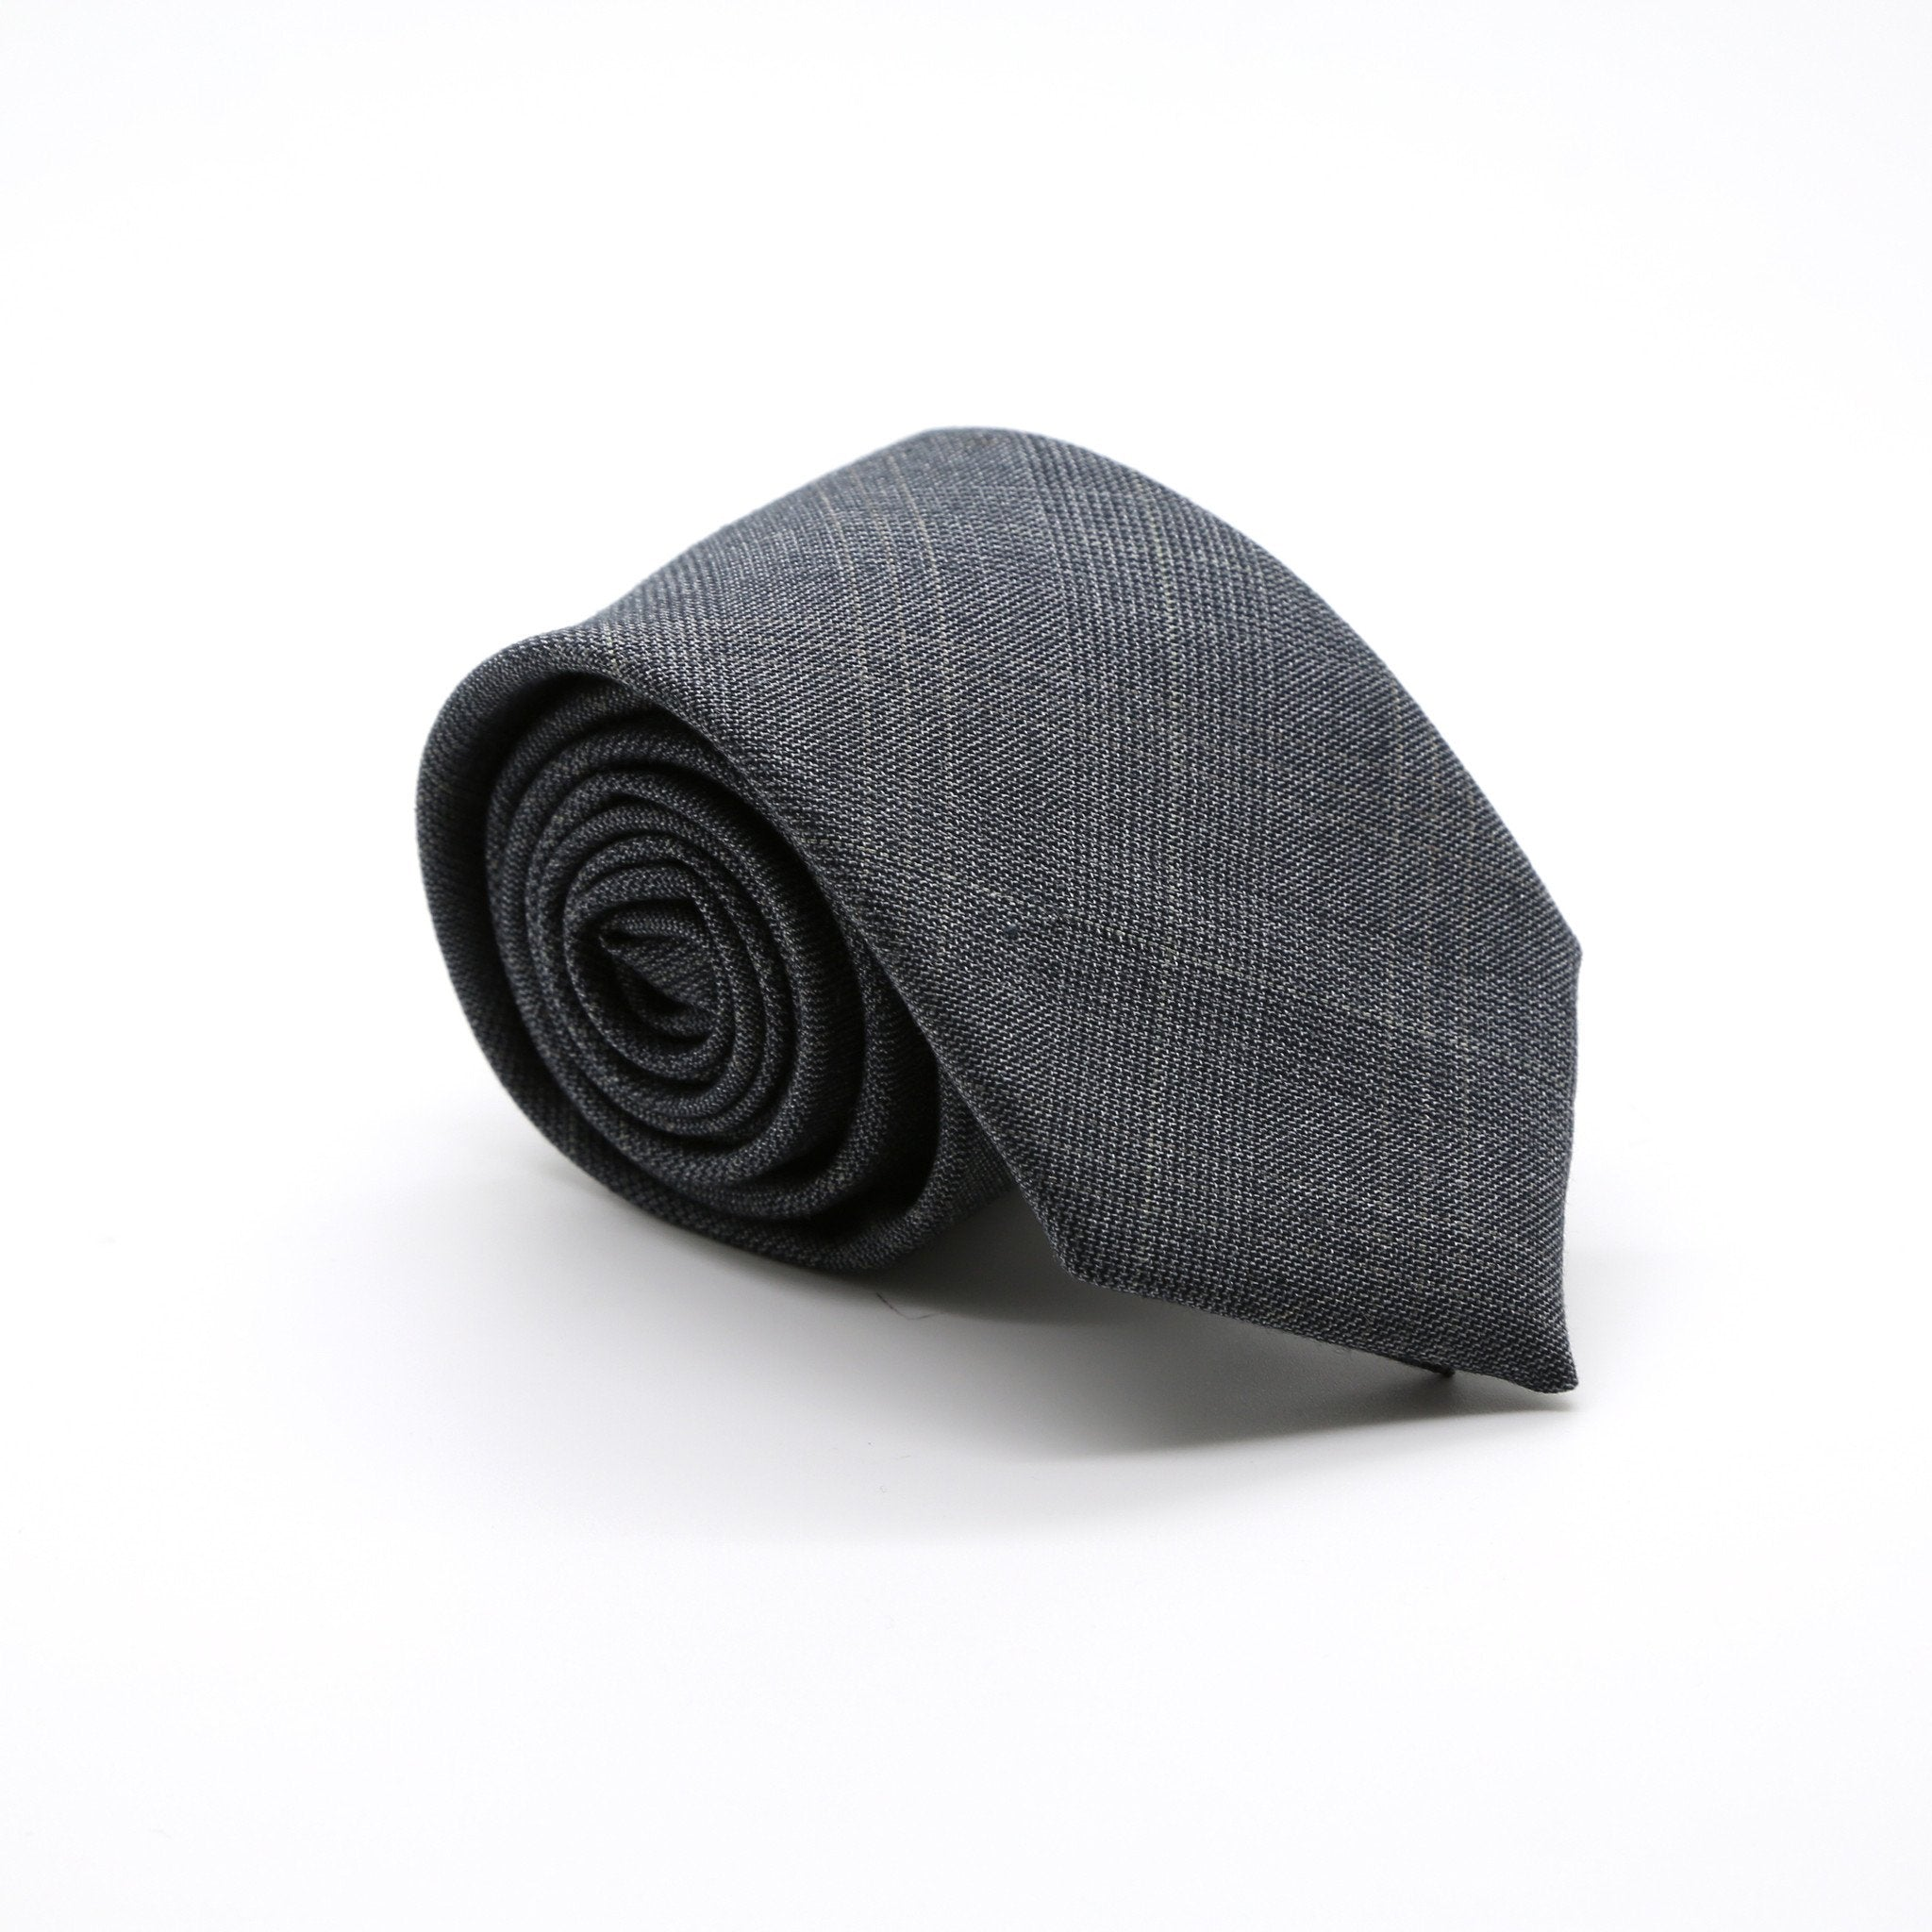 Slim Charcoal and Hint Of Tan Plaid Neckties & Handkerchief - Giorgio's Menswear